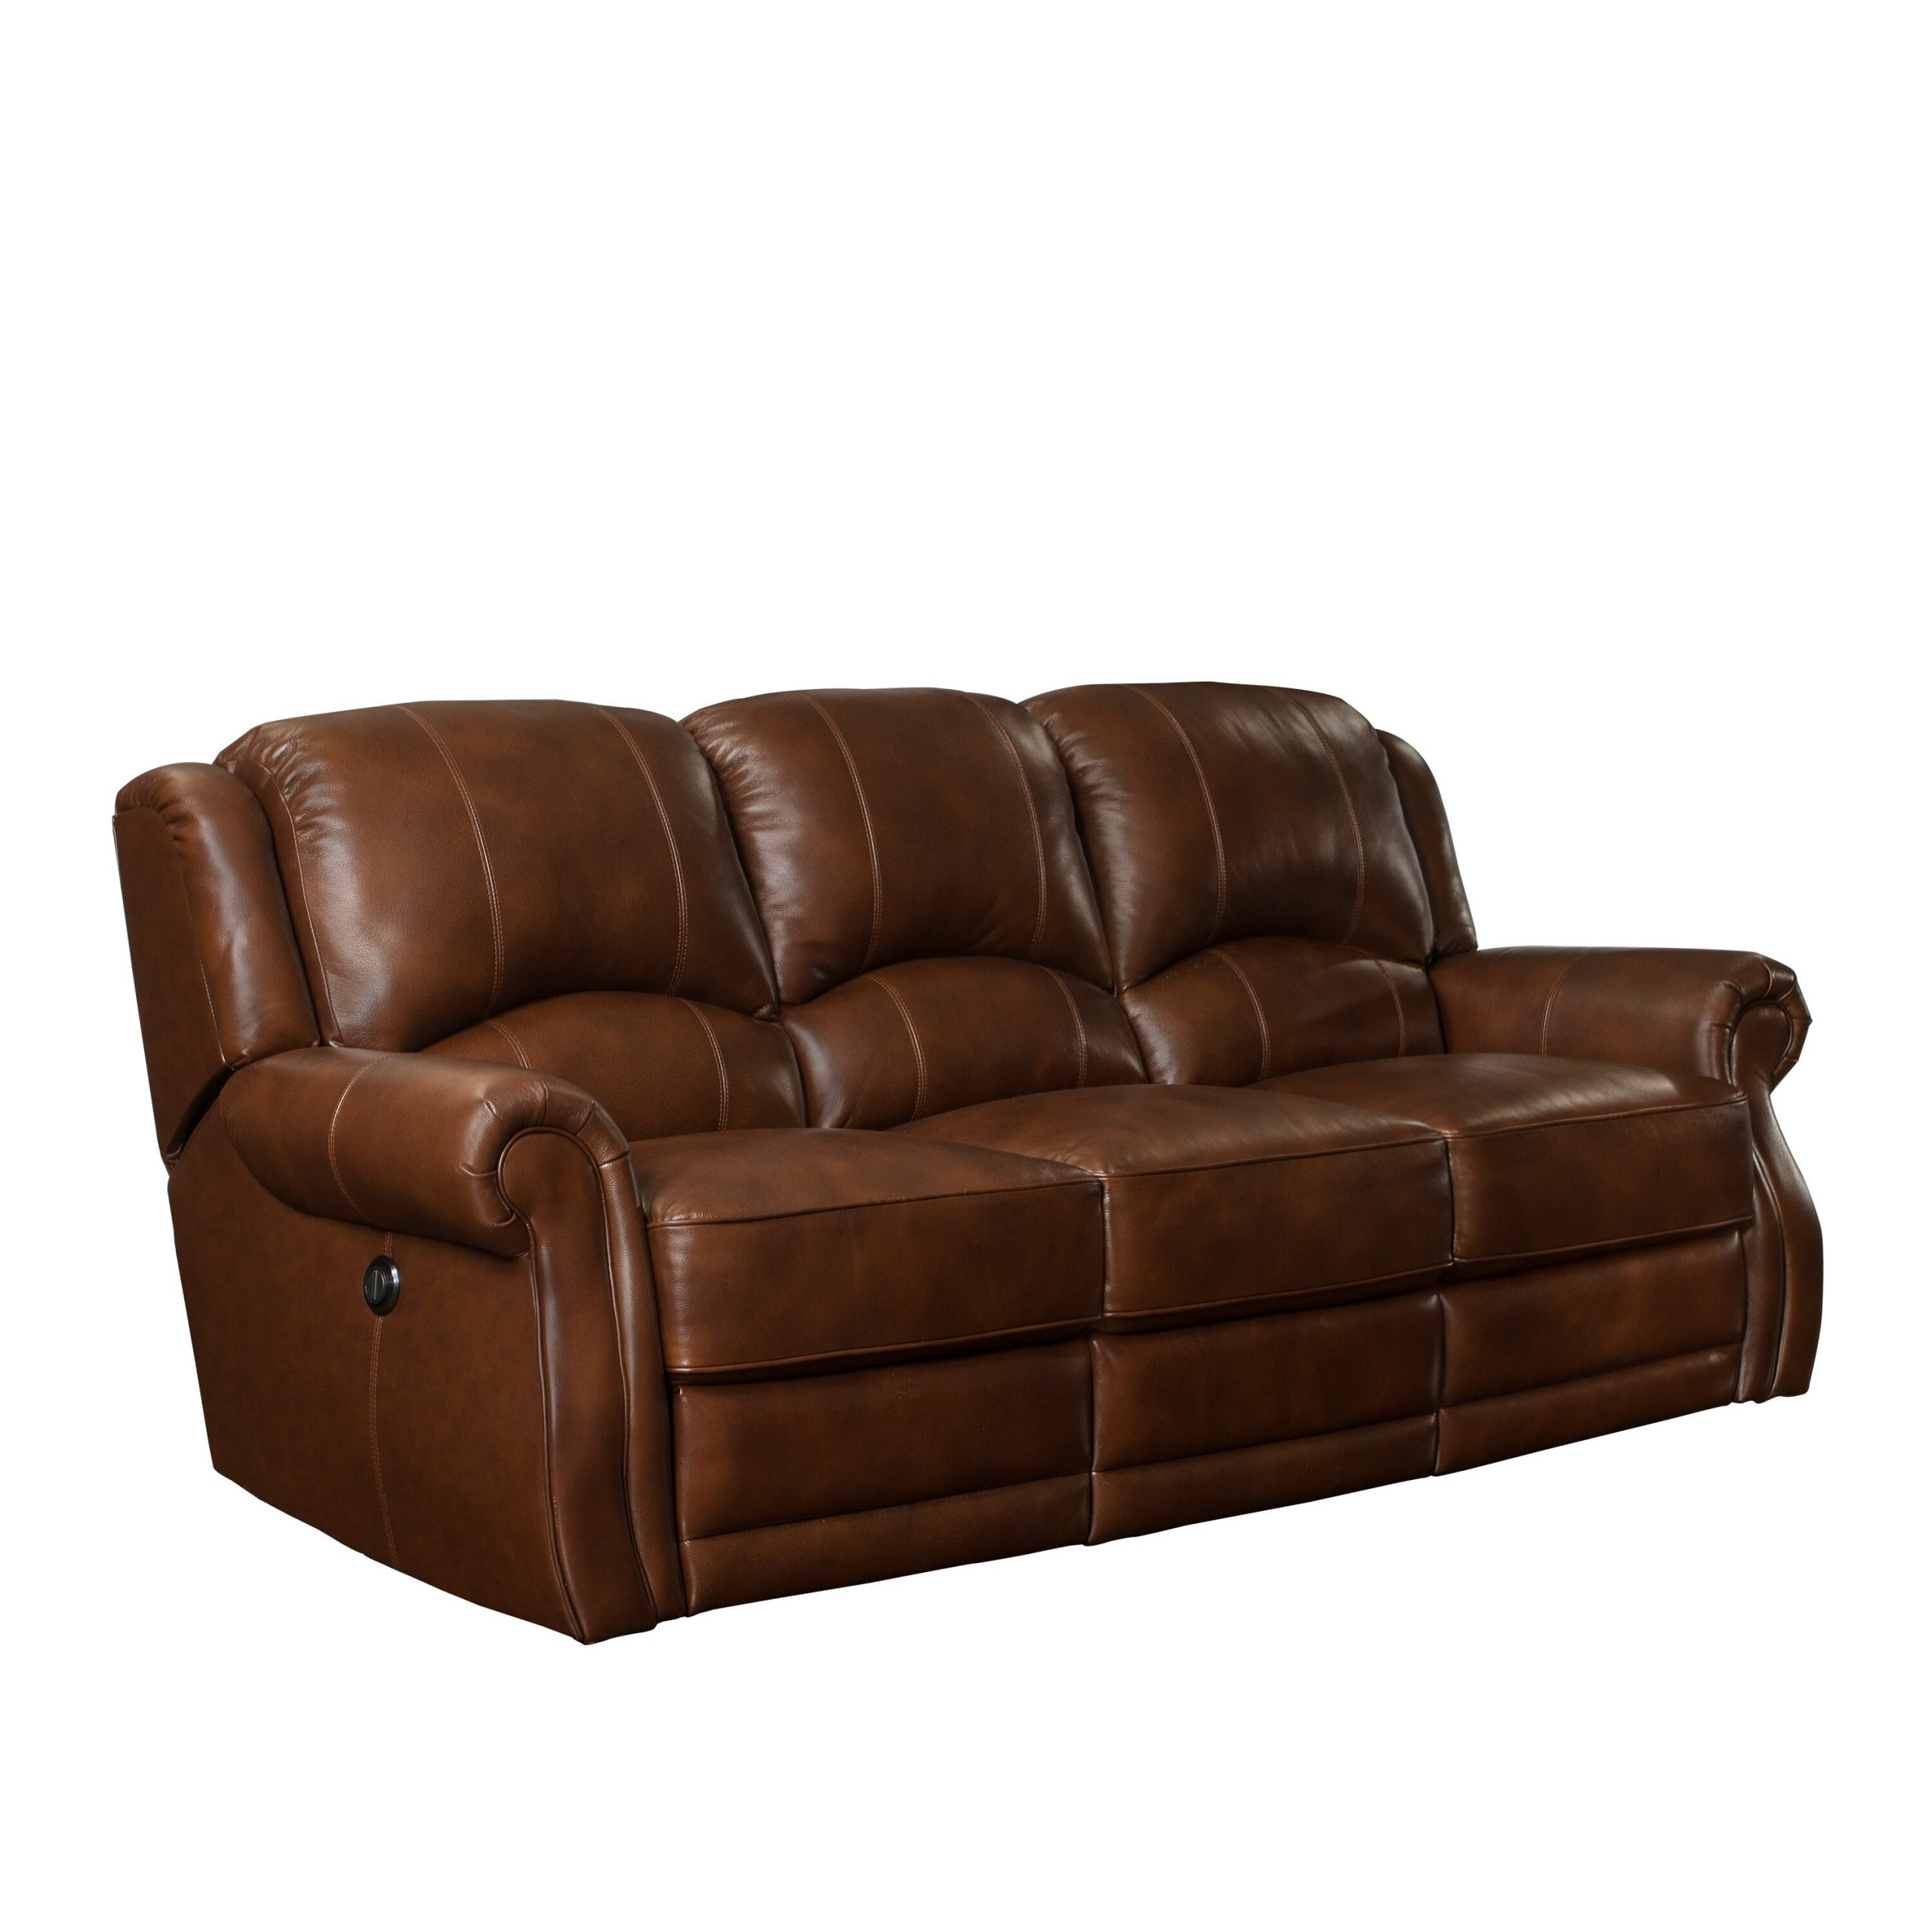 Barcalounger Cedar Hill Casual Comforts Power Leather For Charleston Power Reclining Sofas (View 15 of 15)